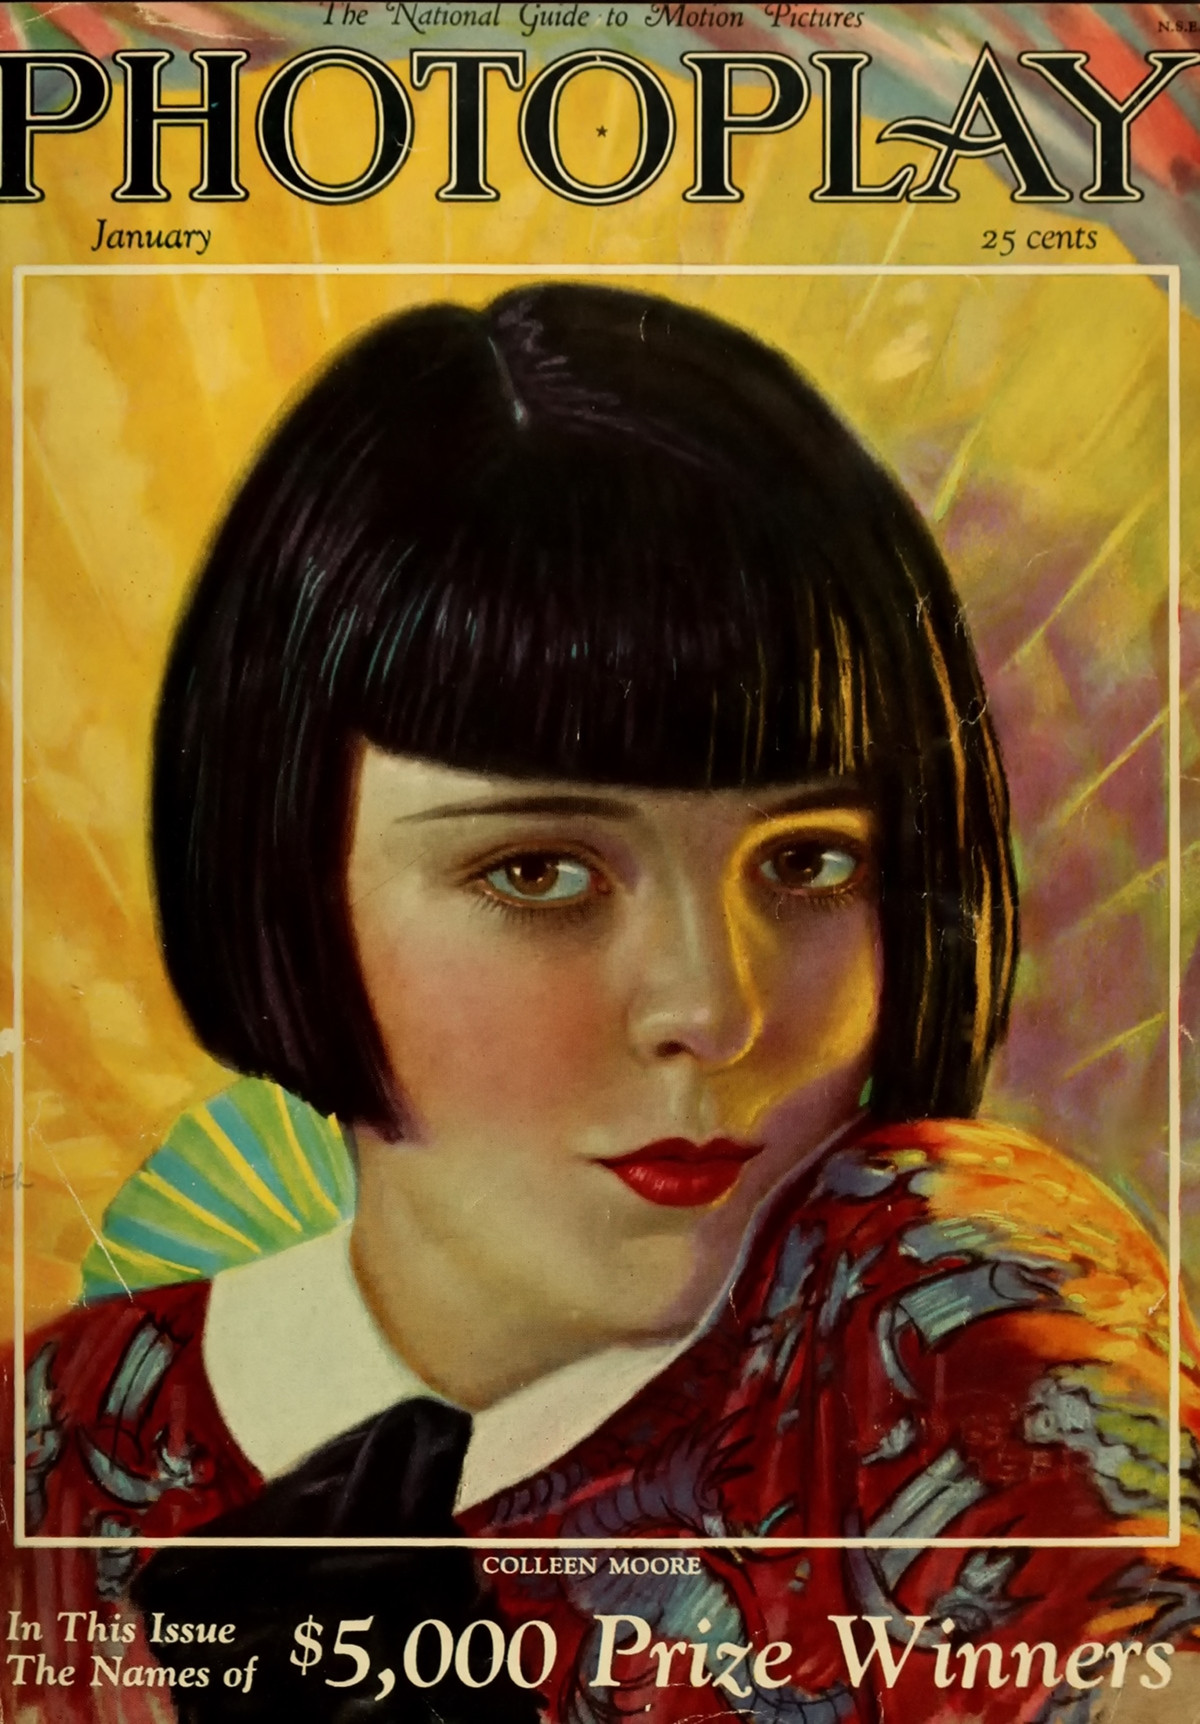 Photoplay cover for January 1926 featuring Colleen Moore, based on a painting by Livingston Geer